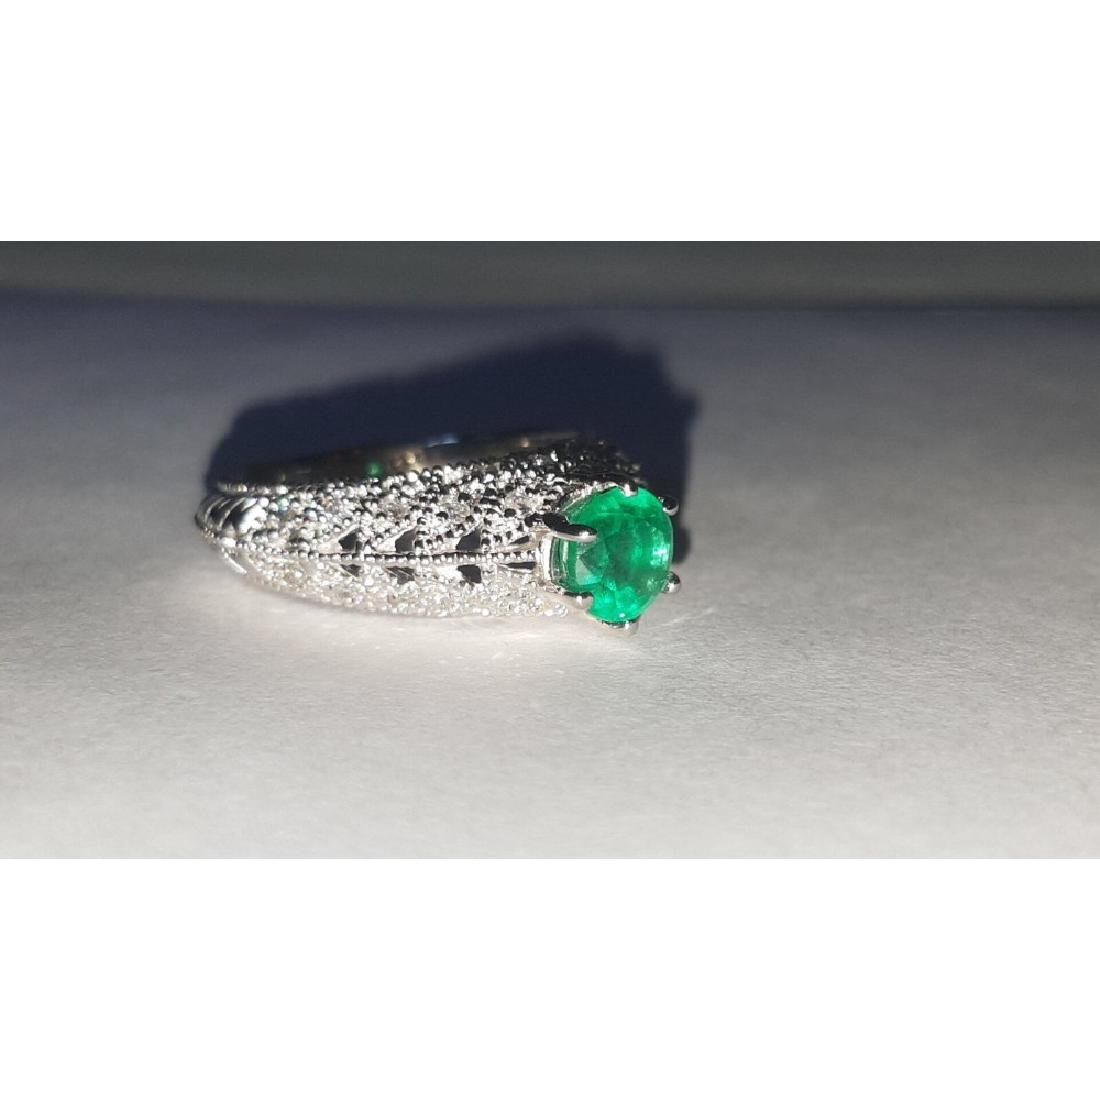 14K Gold, 3.00 Carat Diamond and Colombian Emerald Ring - 3